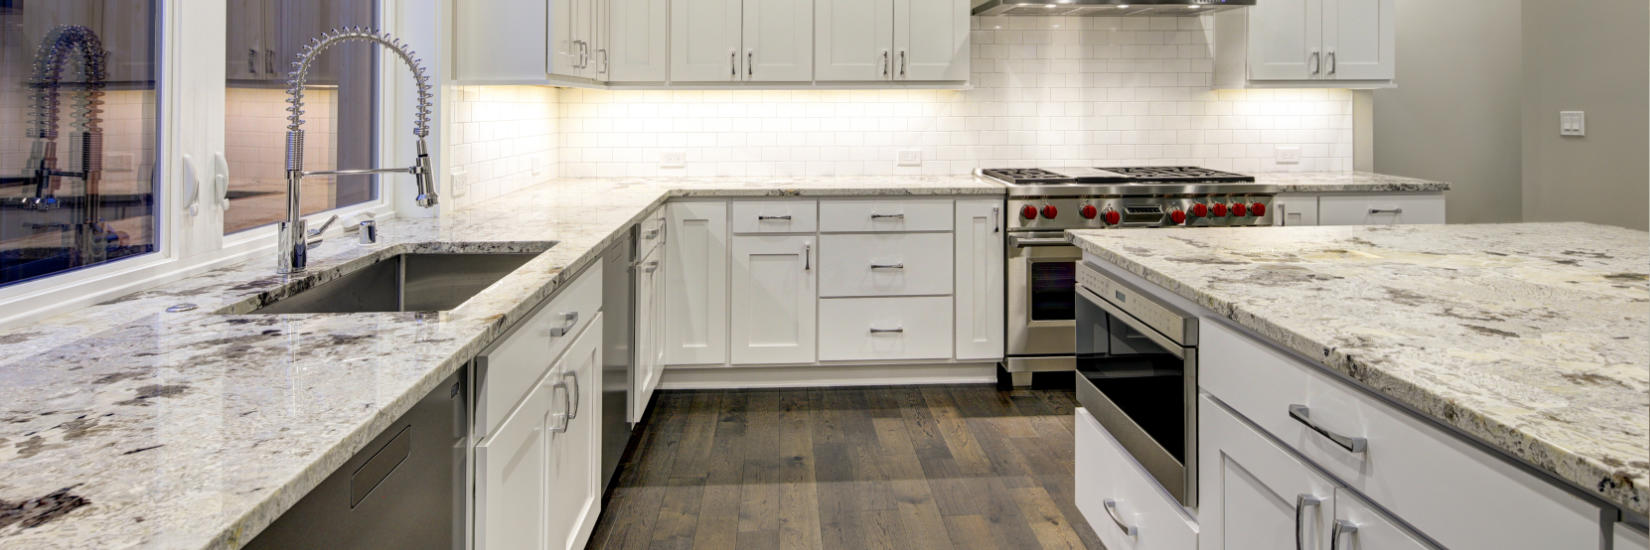 small space kitchen remodeling ideas   jericho